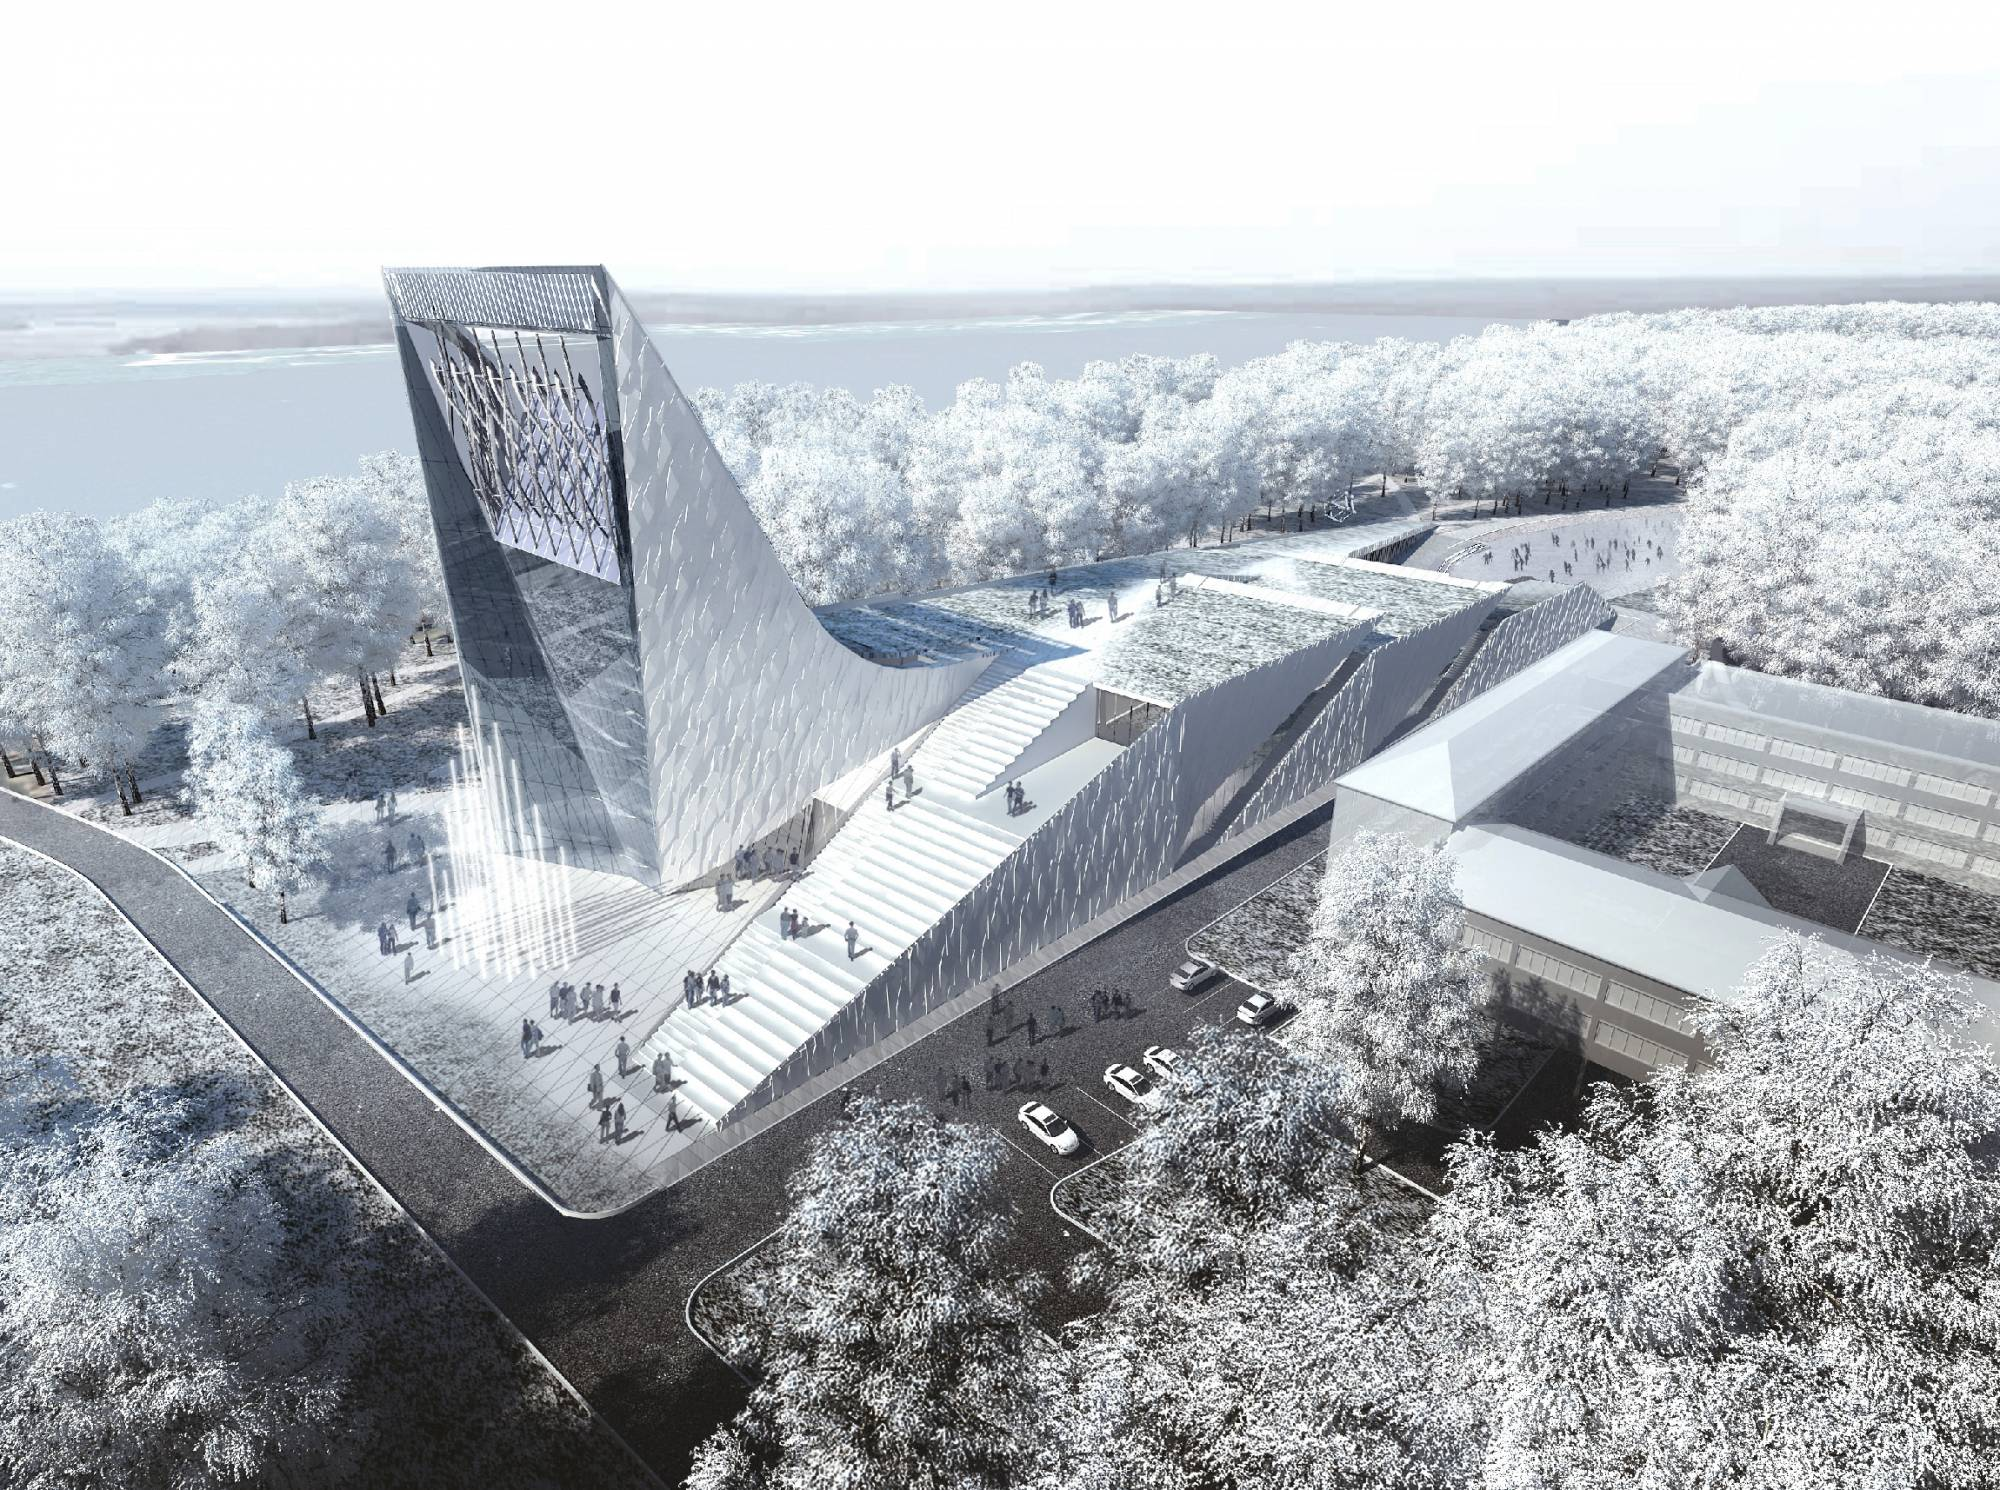 Science and Technology Museum in Tomsk © Asadov Architectural Bureau - See more at: http://www.argophilia.com/news/five-russian-architectural-projects-to-blow-your-mind/215651/#sthash.28c96UlE.dpuf